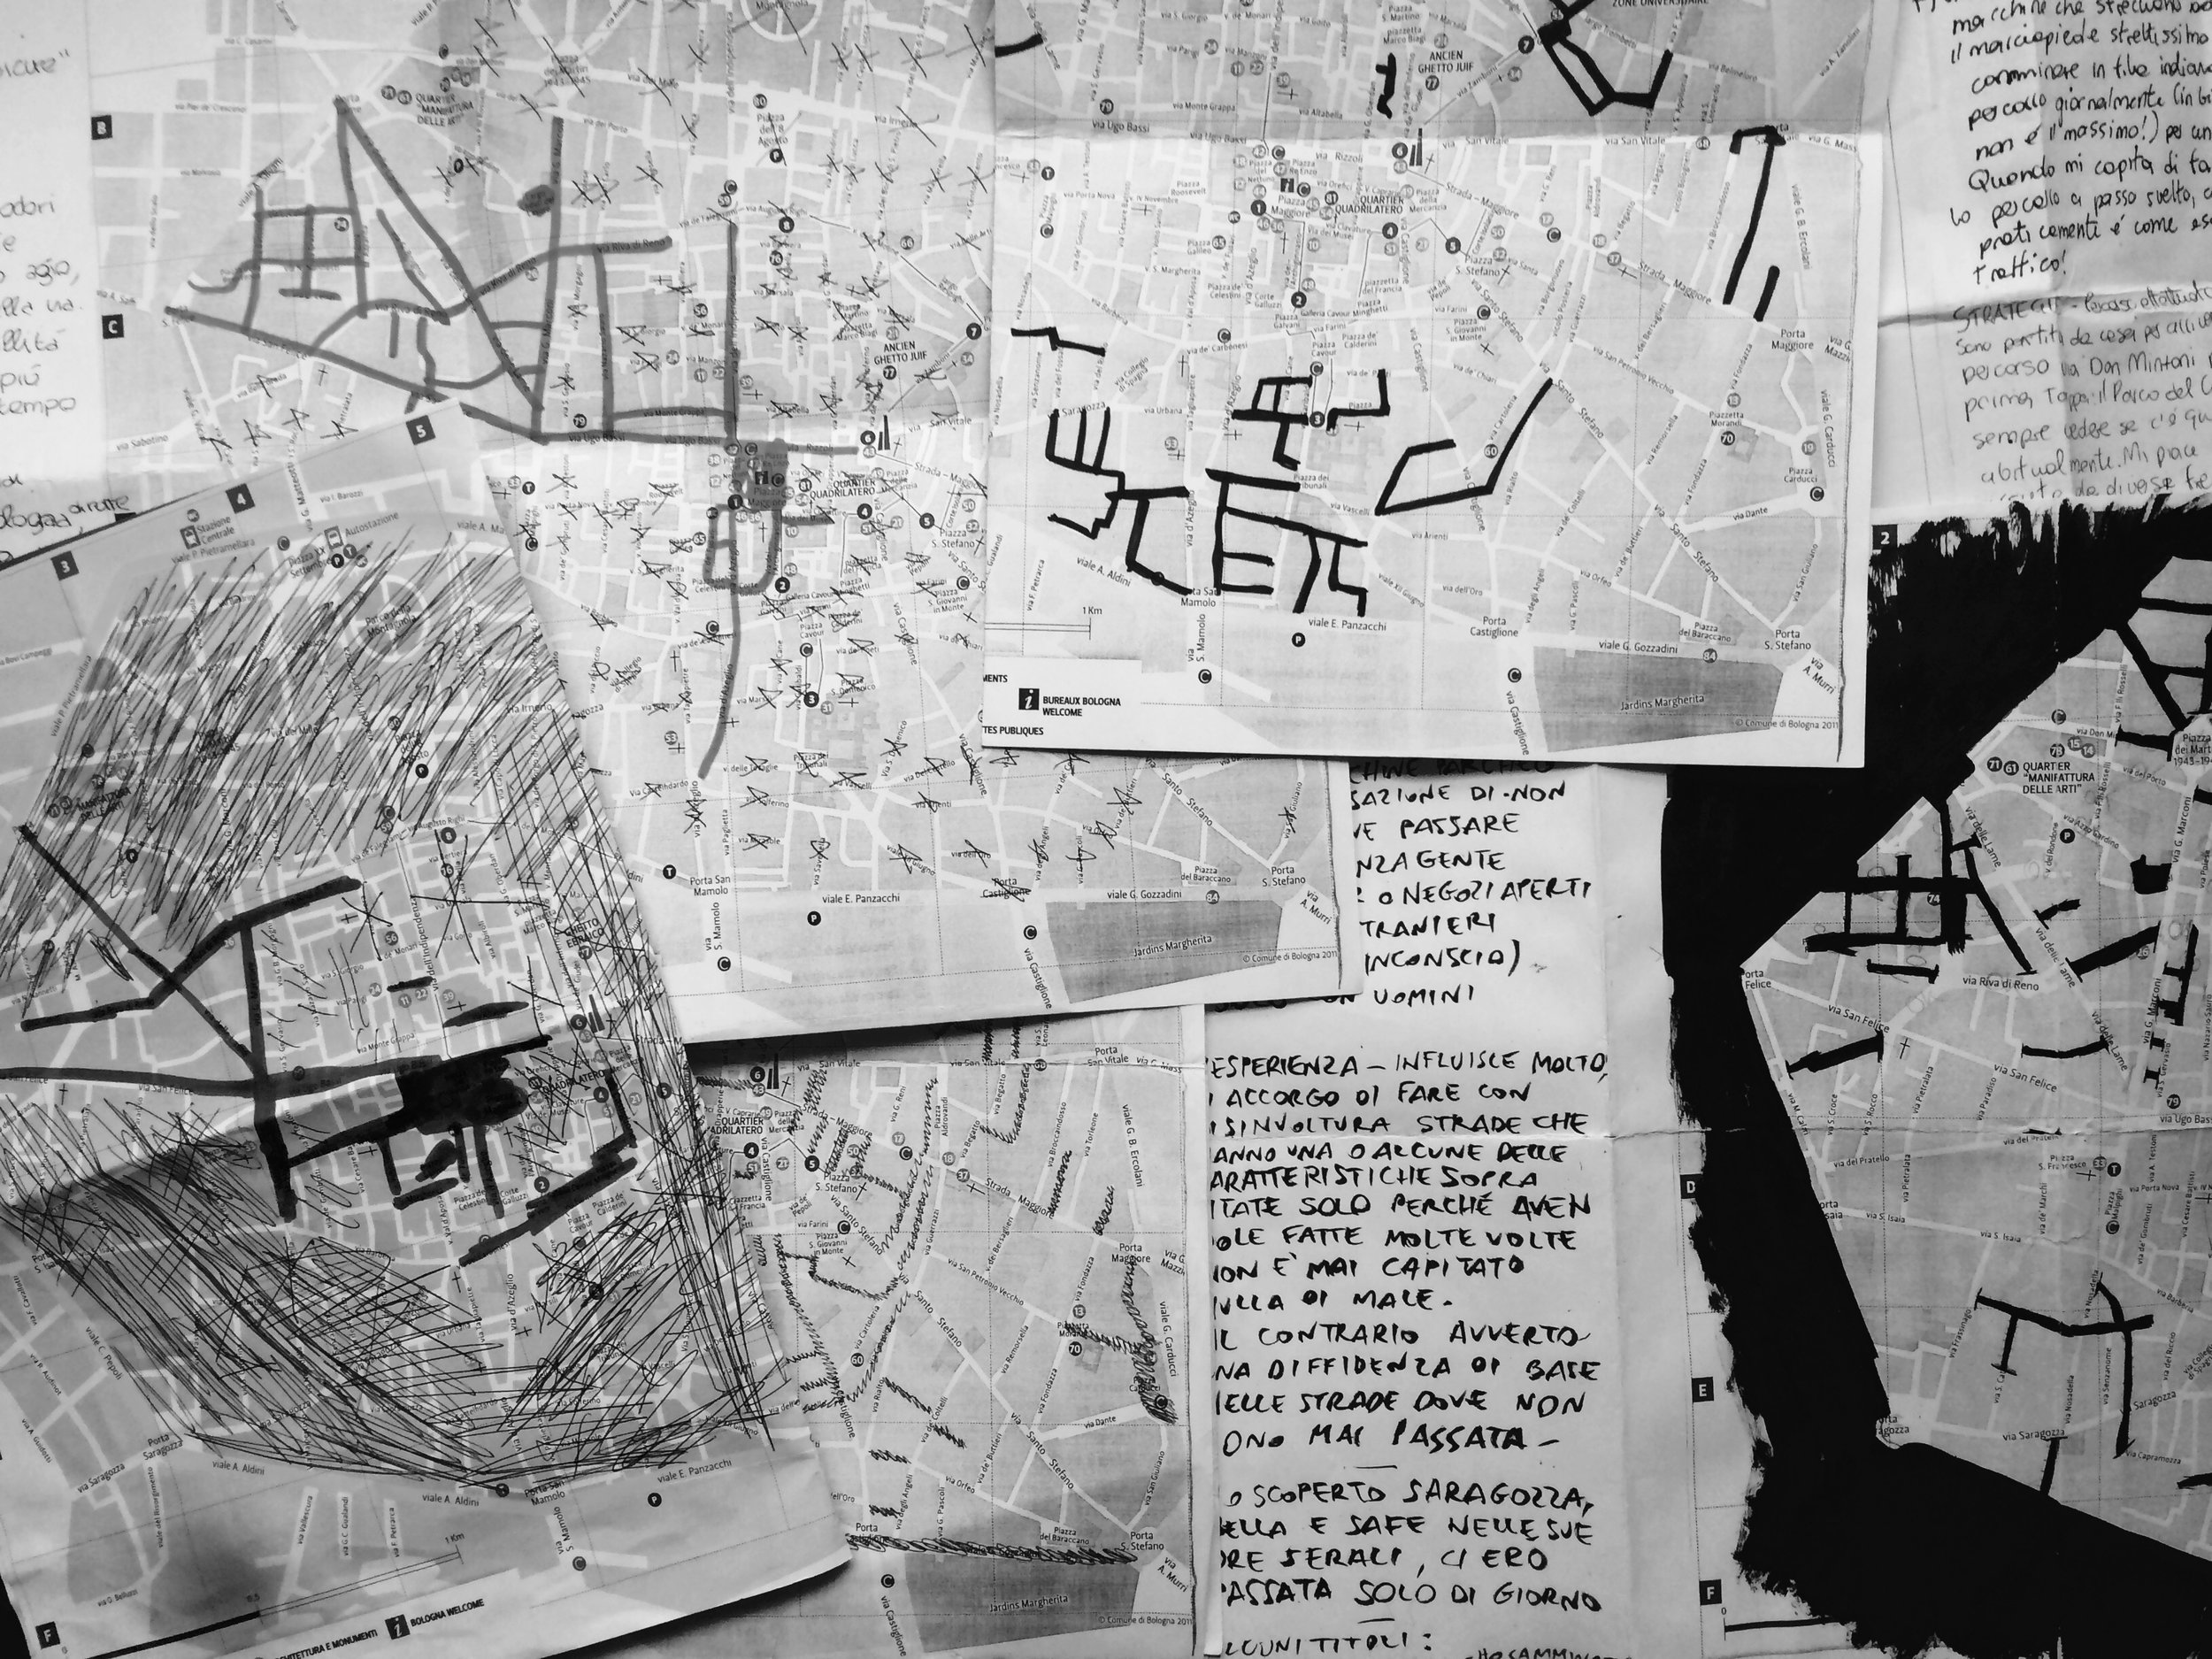 Some of the participants Maps, resulting from their walks.